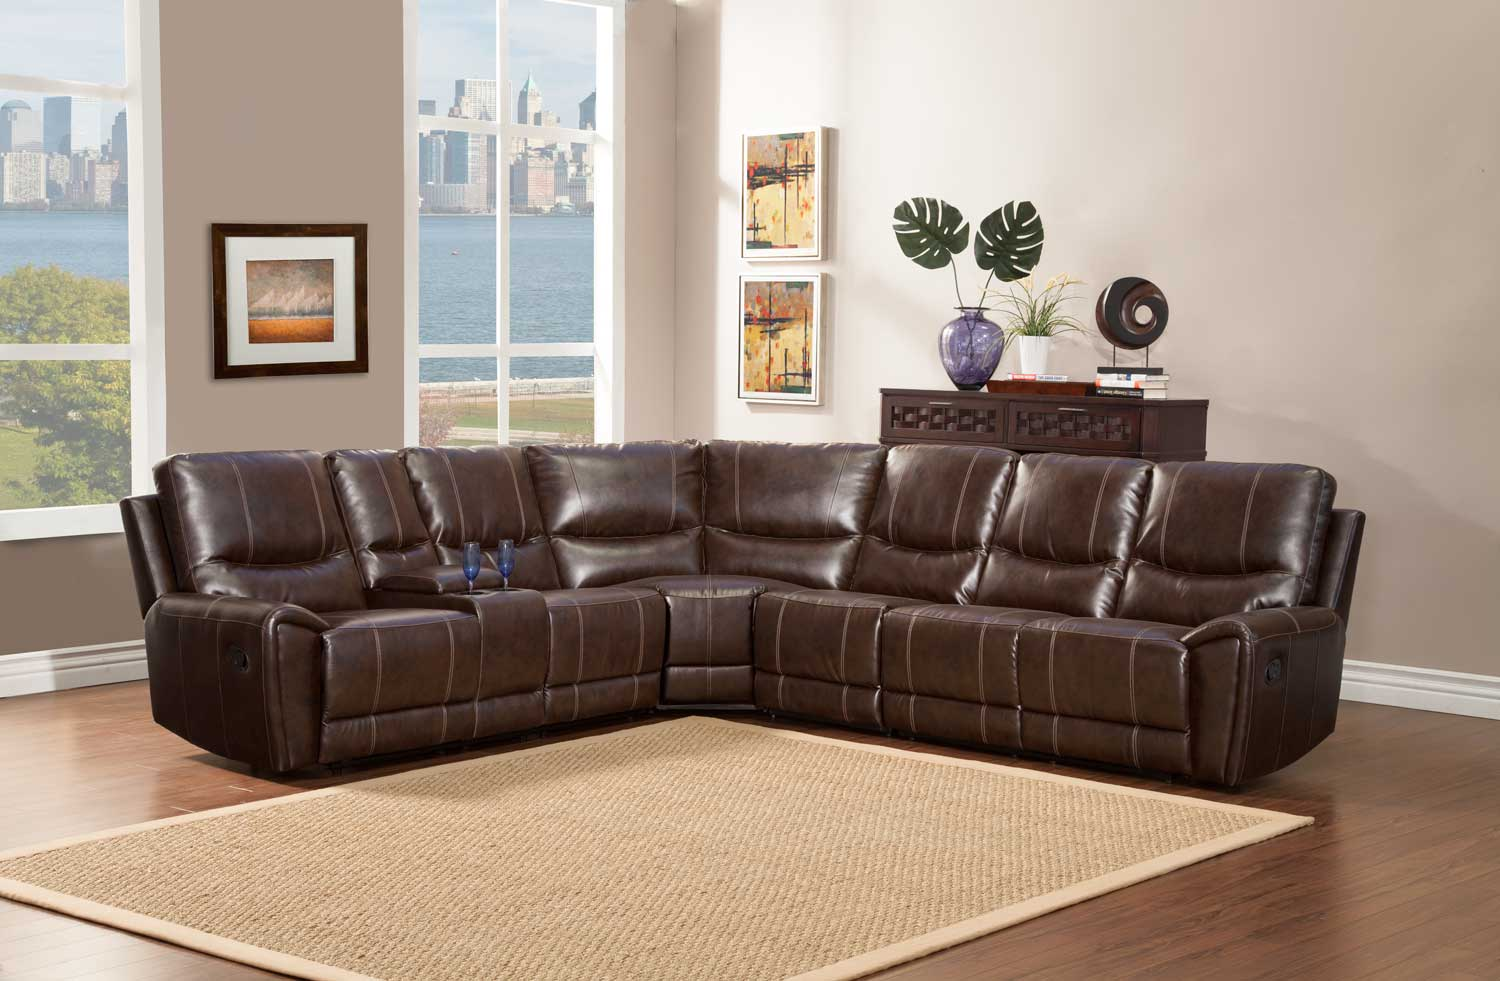 Homelegance Gerald Sectional Sofa Set Brown Bonded Leather Match